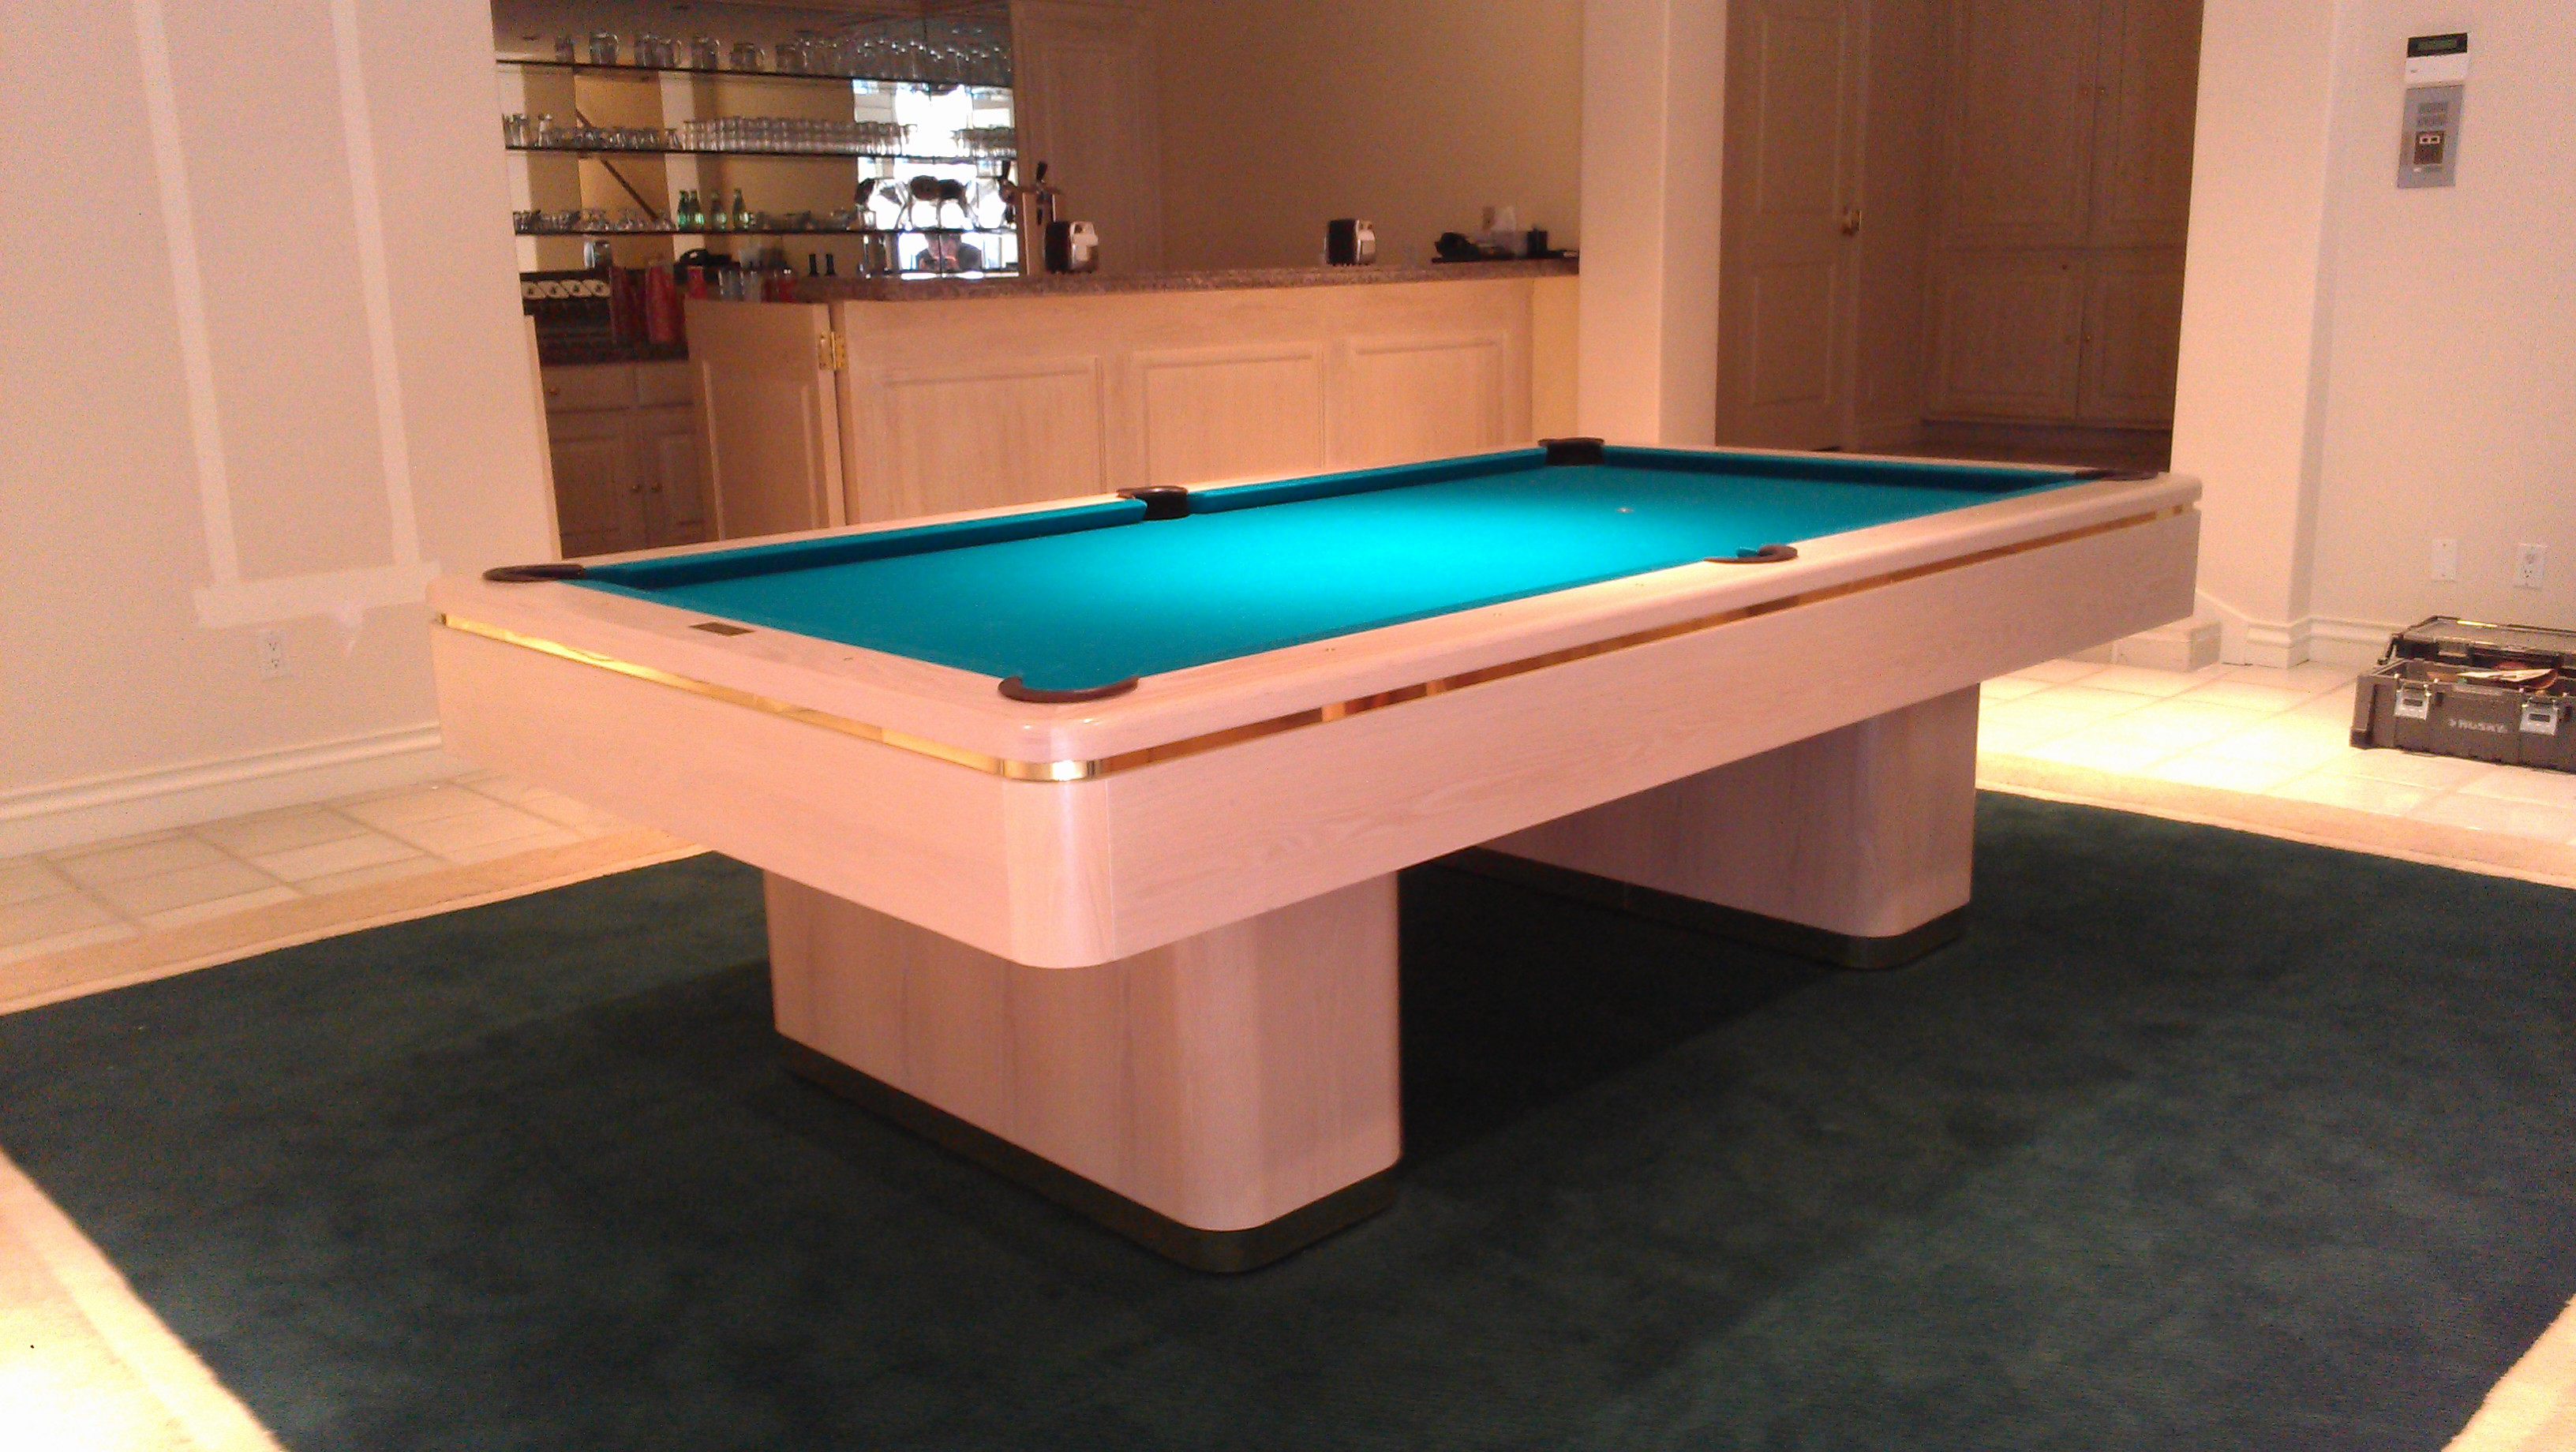 craigslist diamond pool table jewelry. Black Bedroom Furniture Sets. Home Design Ideas